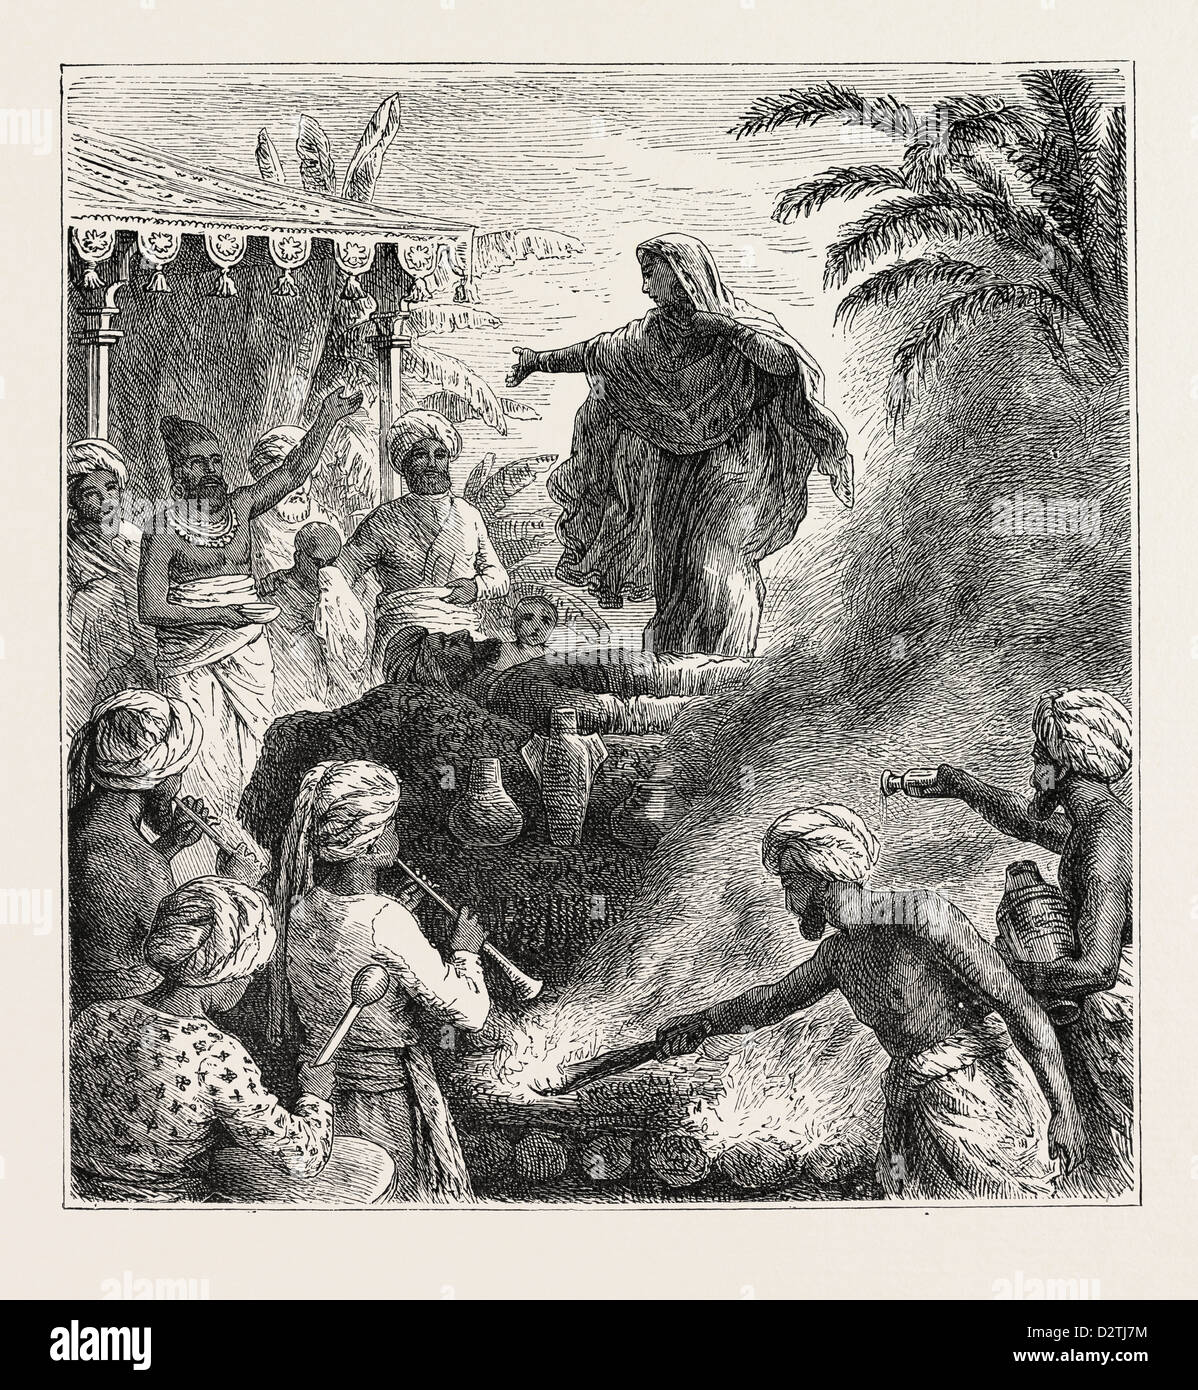 HINDOO RITE OF SUTTEE. THE WIDOW BURNT WITH HER HUSBAND'S CORPSE. - Stock Image